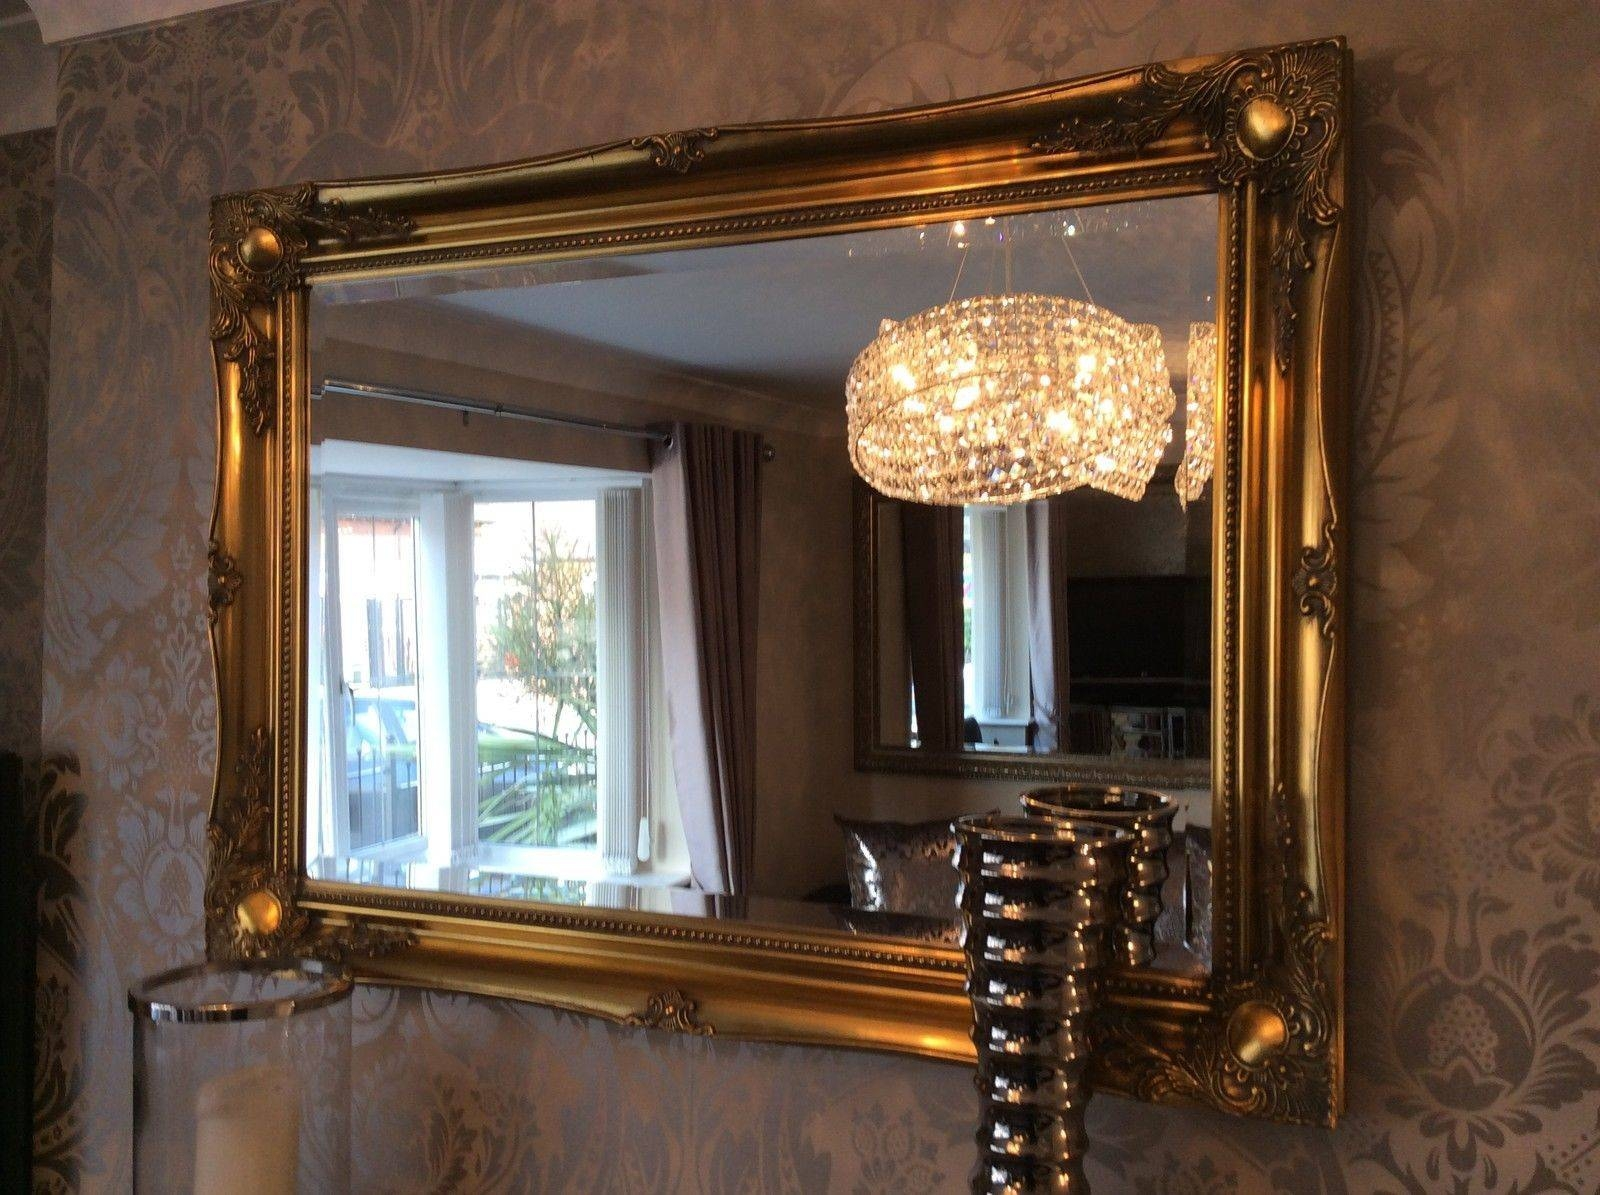 Antique Gold Mirror with regard to Large Antique Silver Mirrors (Image 2 of 15)